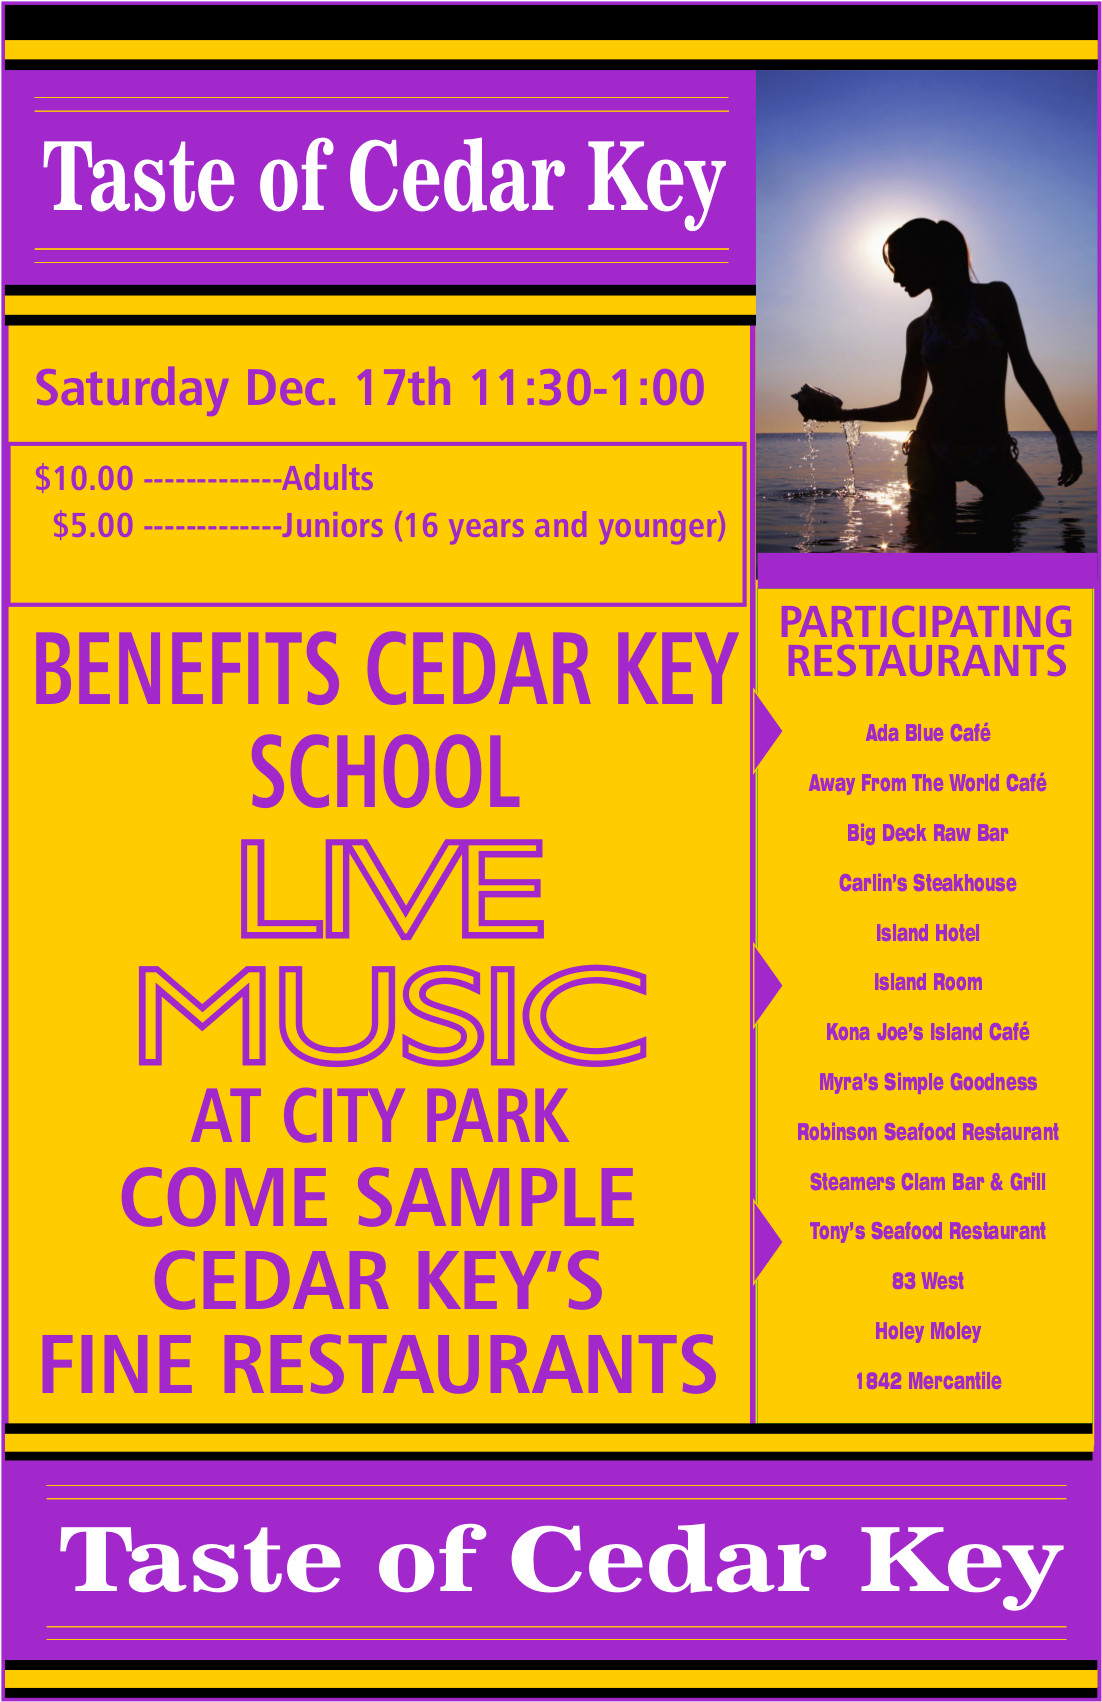 DEC 5 taste of cedar key flyer